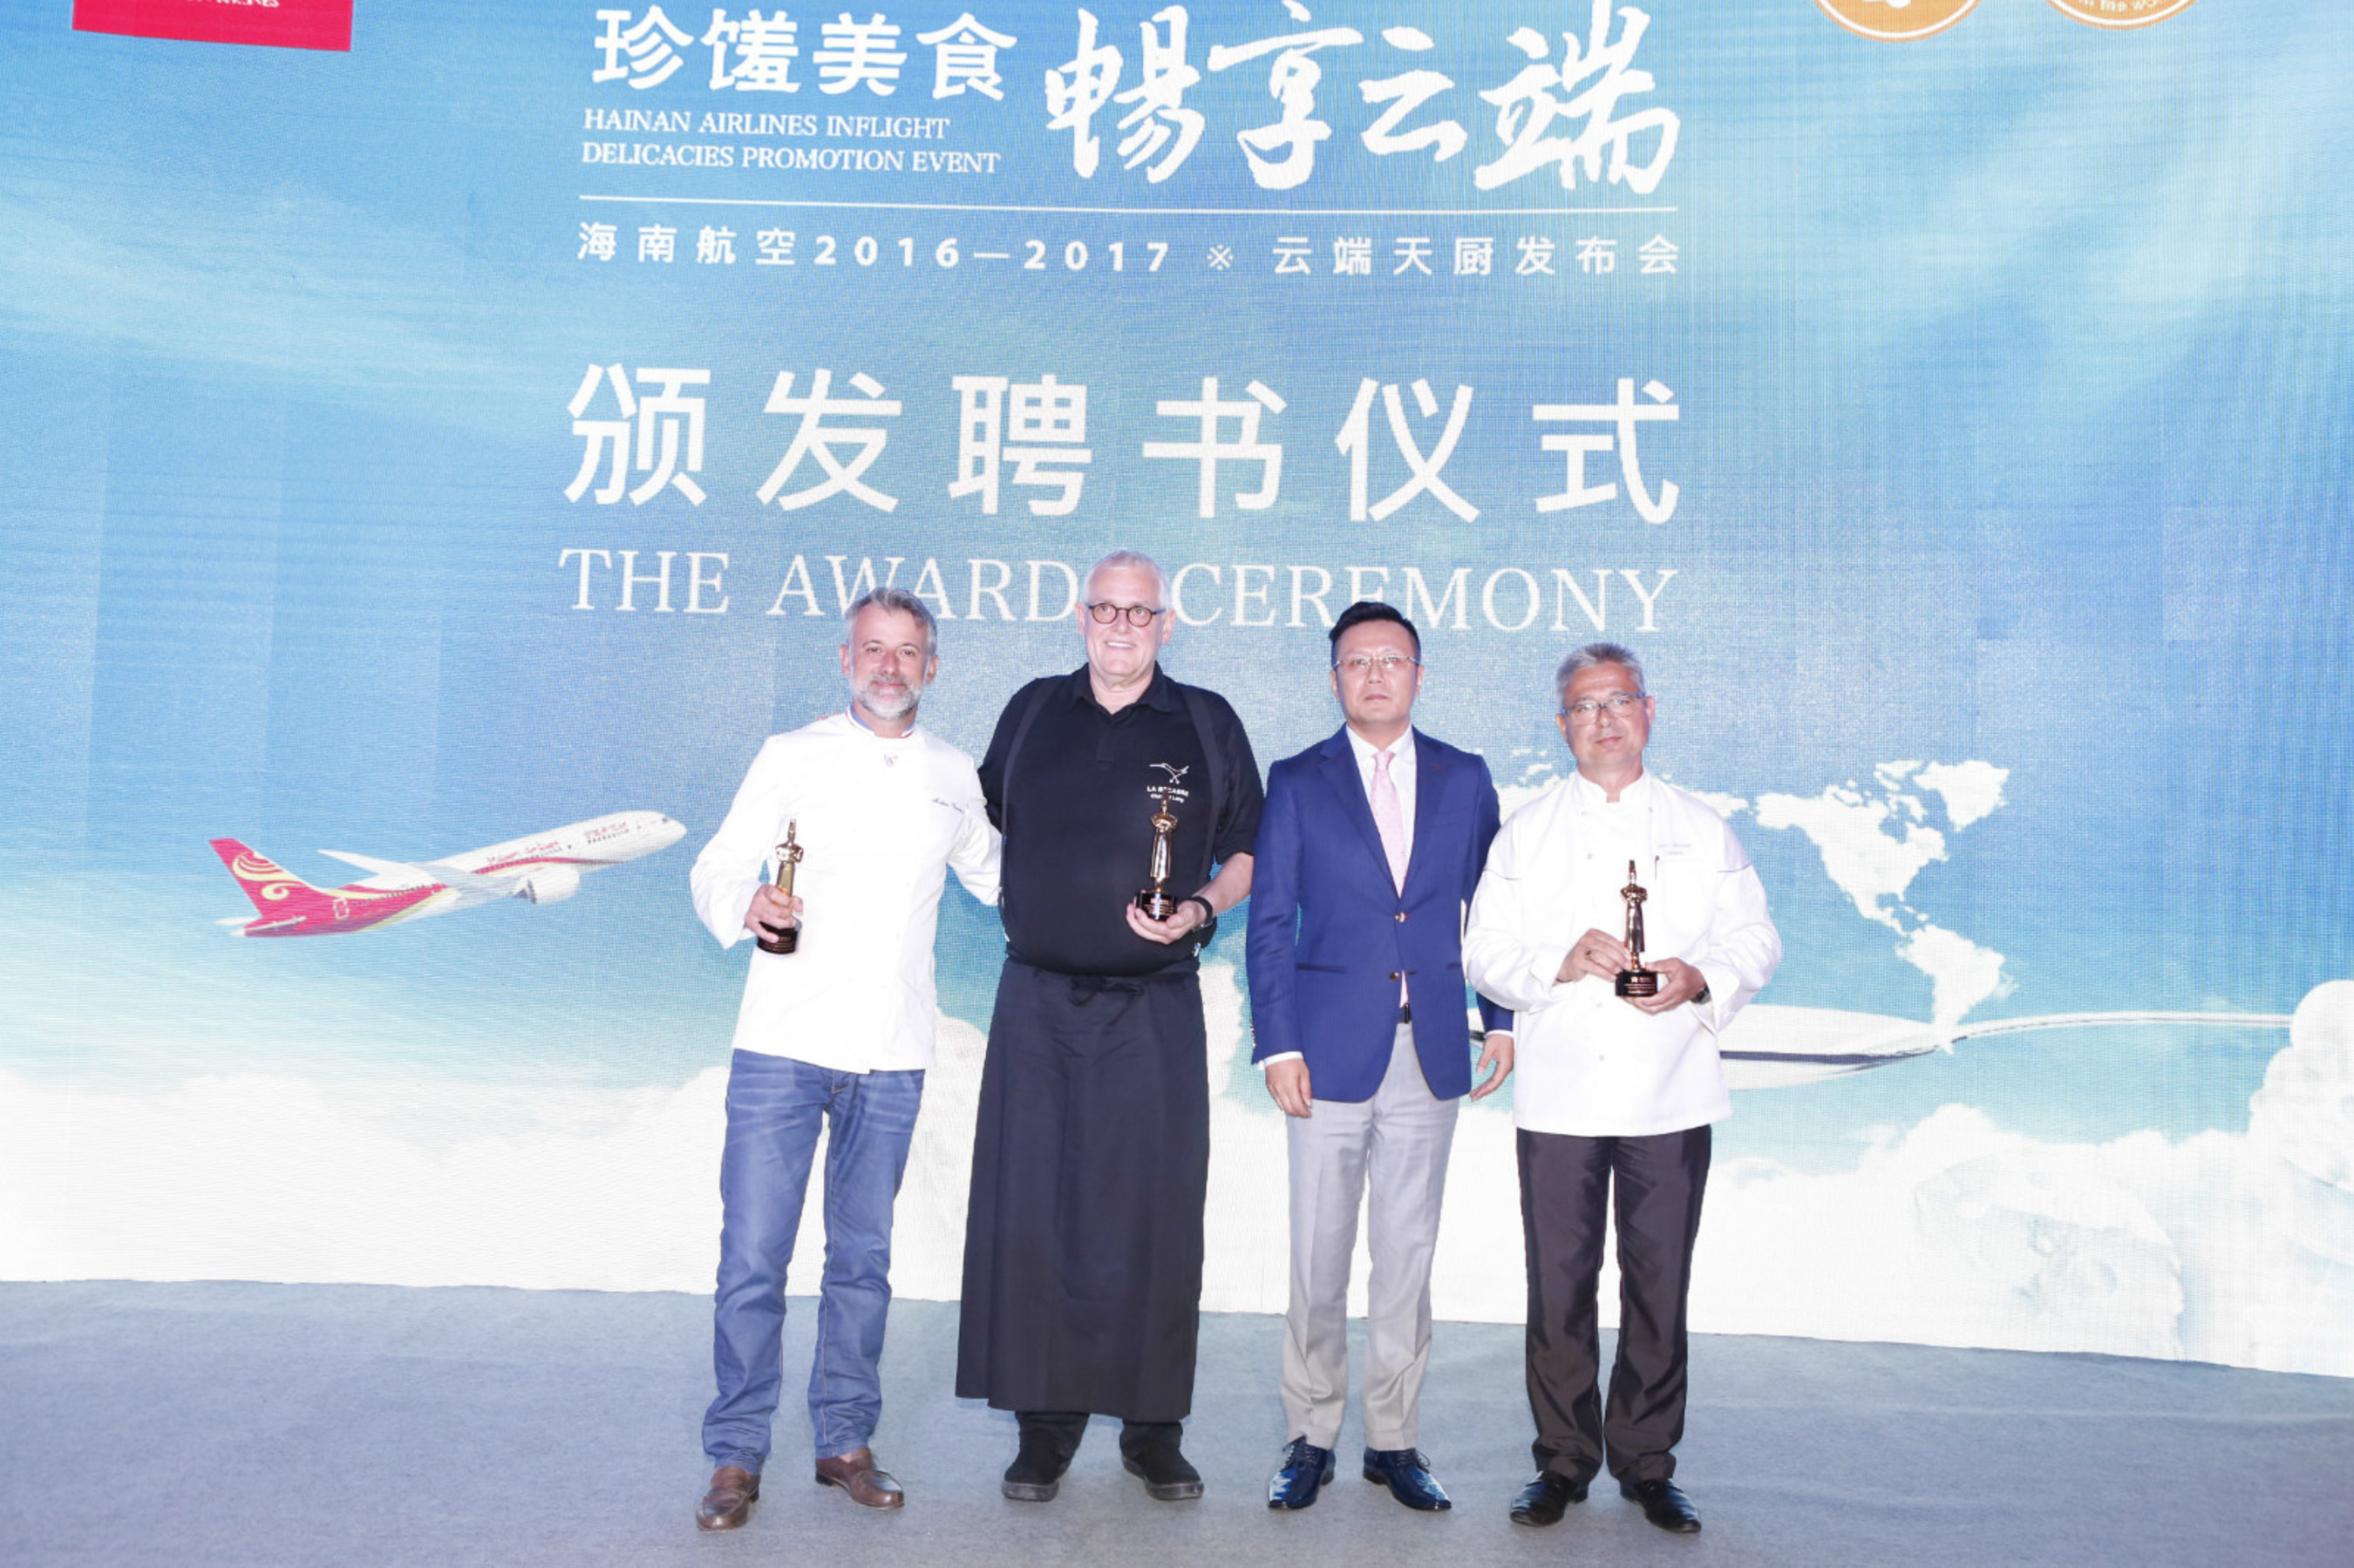 Hainan Airlines Upgrades Airborne Cuisine To Include An Exclusive Menu Designed by Michelin-starred Chefs